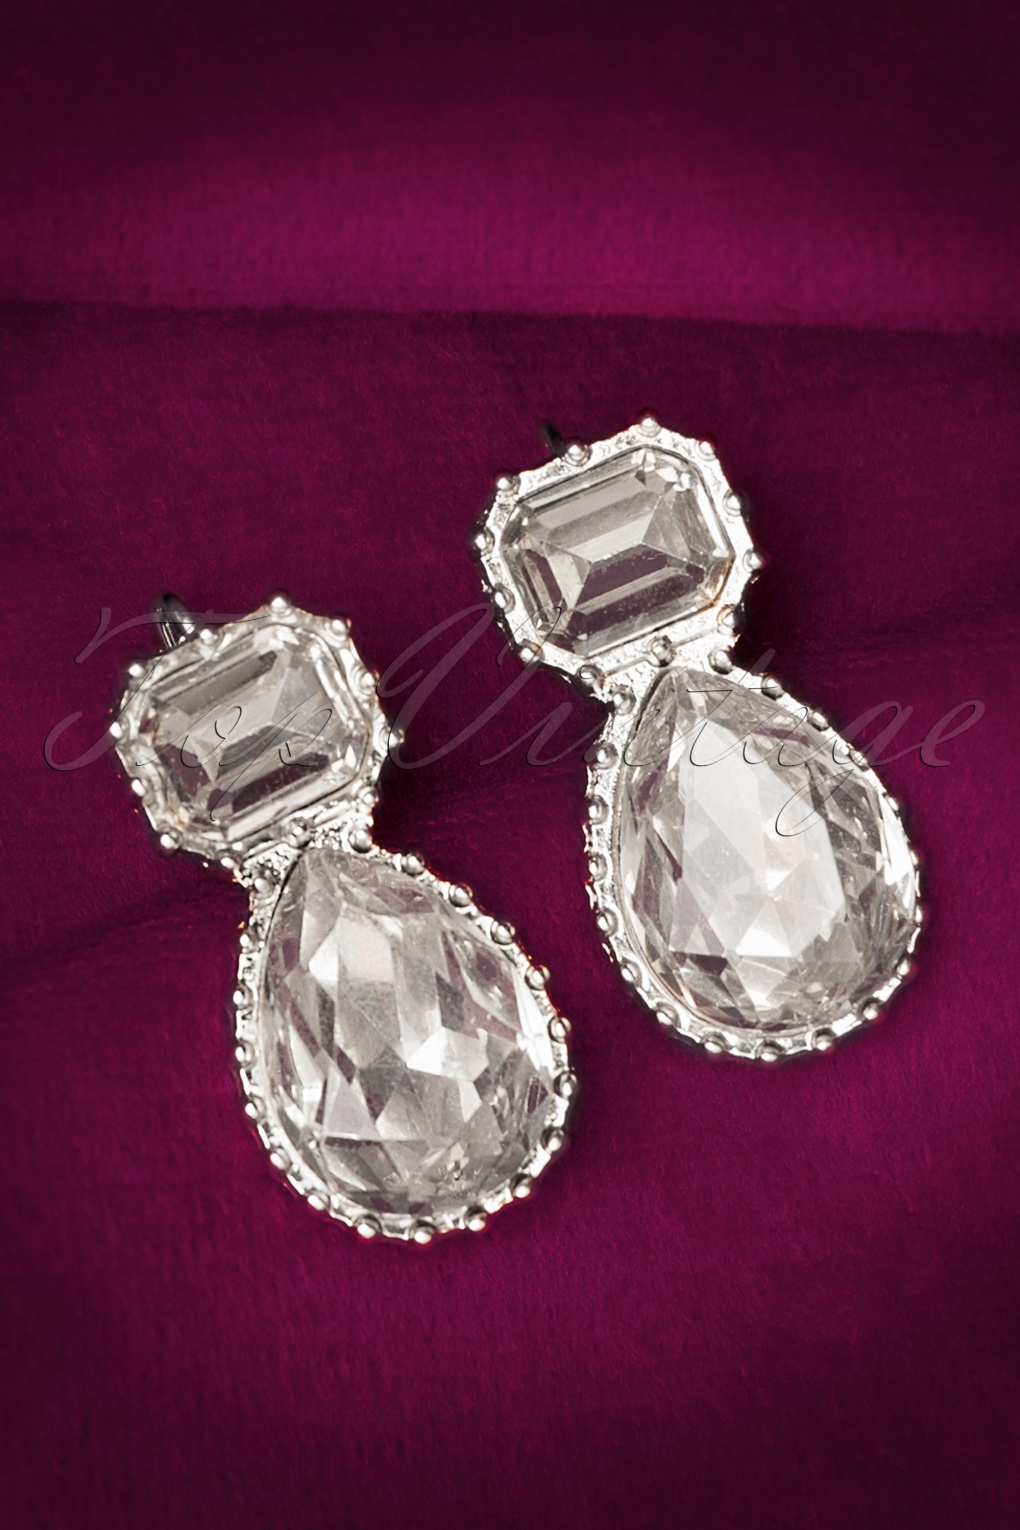 Vintage Style Jewelry, Retro Jewelry 30s Mathilda Earrings in Silver £11.25 AT vintagedancer.com